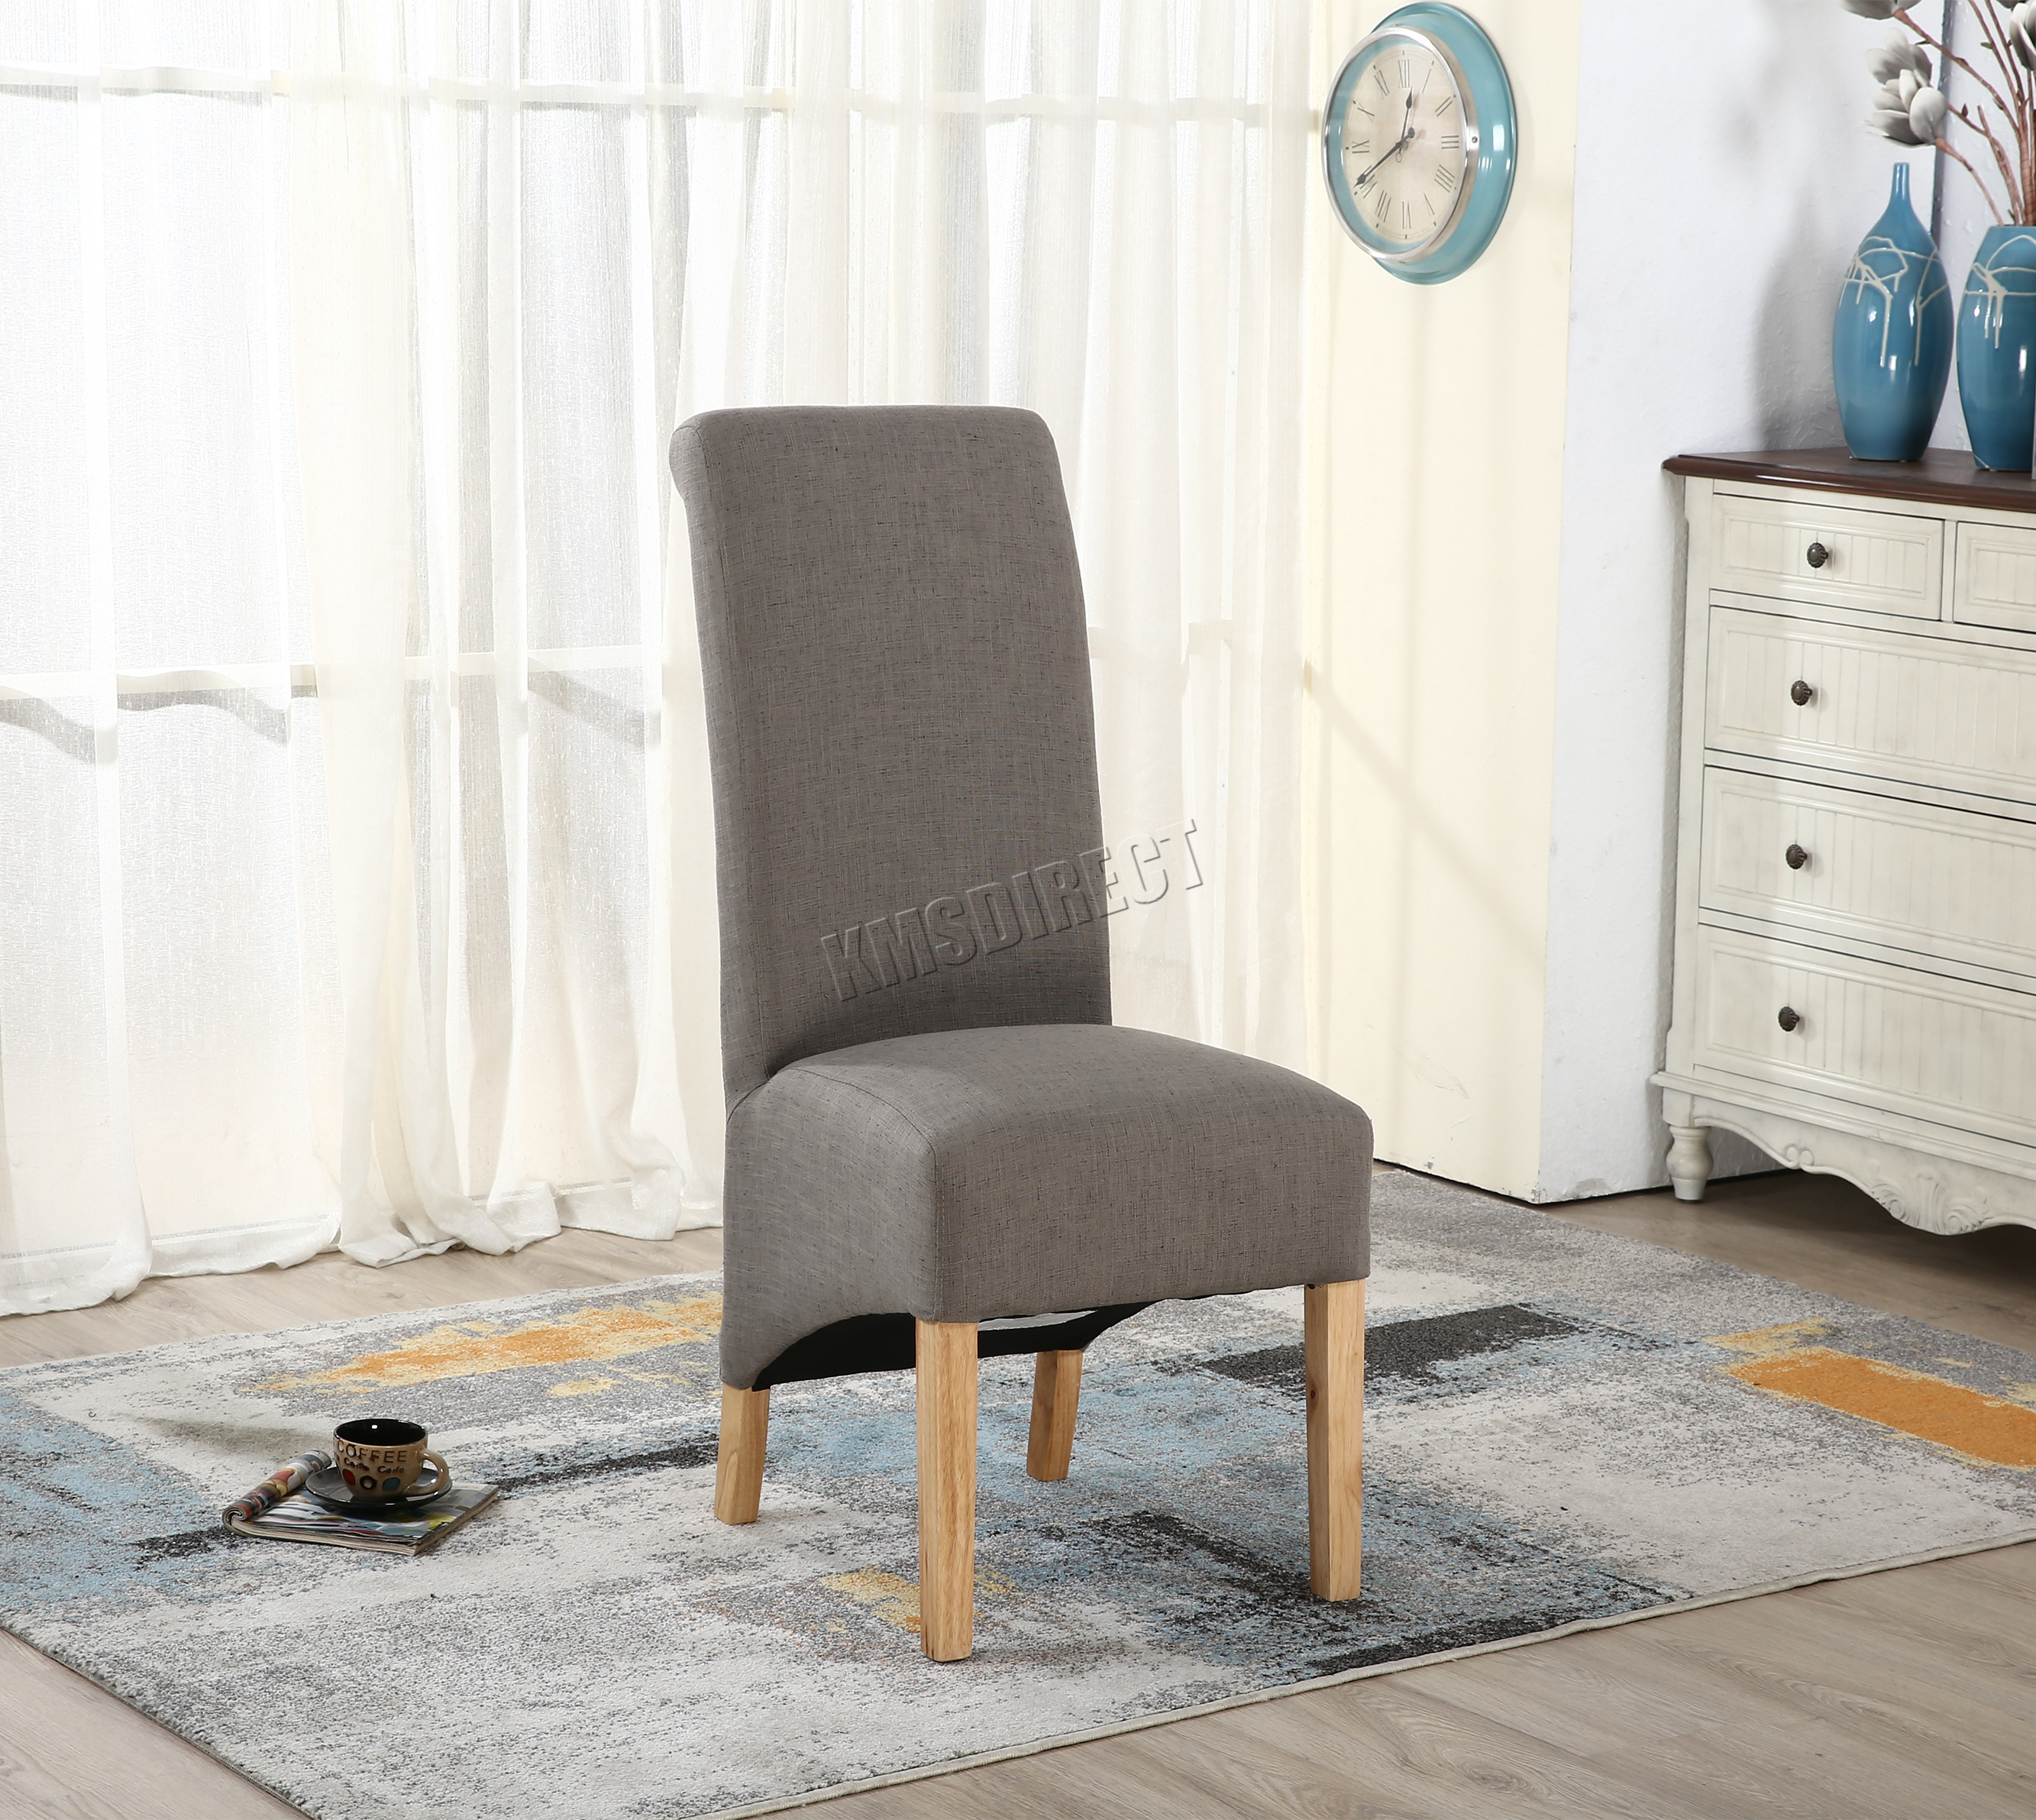 FoxHunter New Linen Fabric Dining Chairs Roll Top Scroll High Back